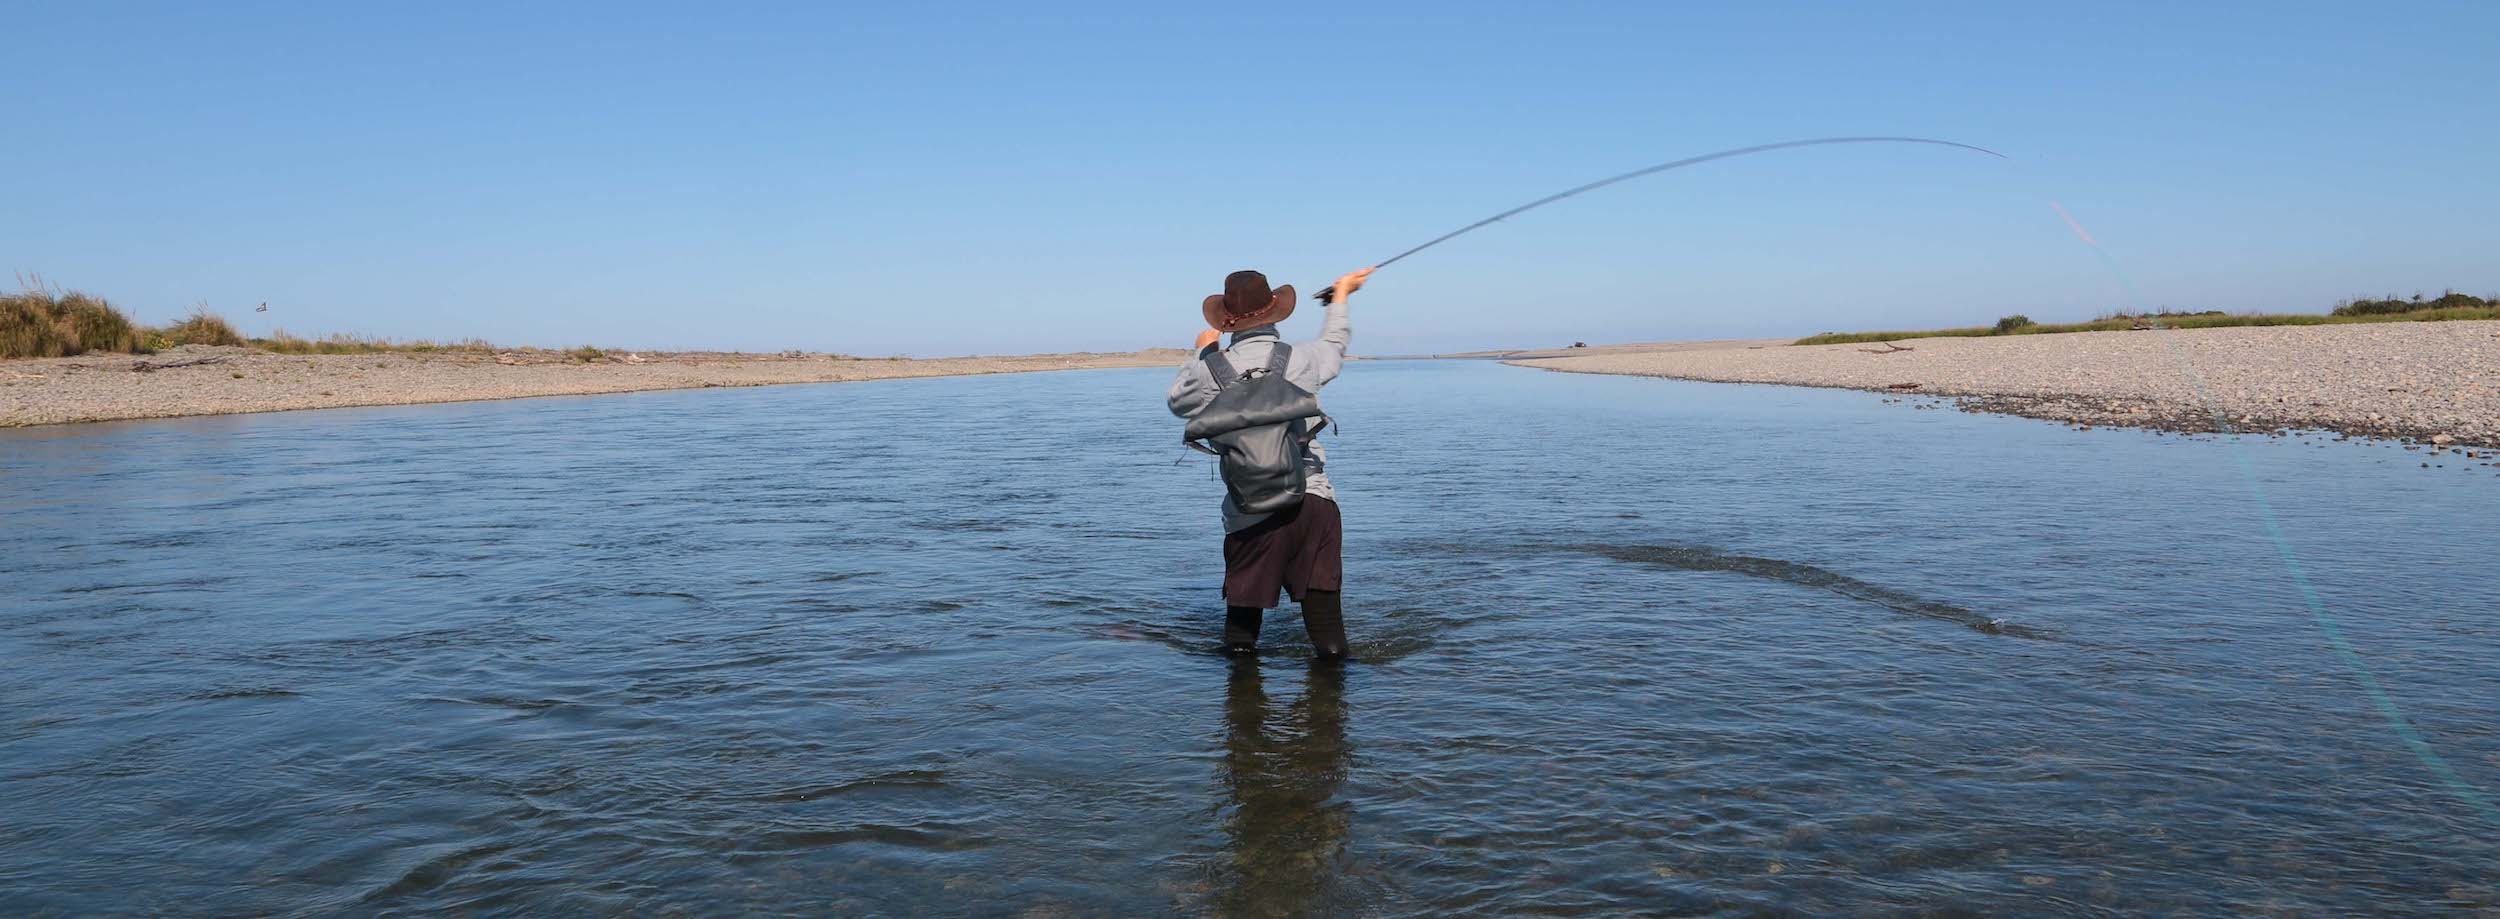 Fly fisherman, from behind, standing Spey casting in wide river mouth, using single-hand Spey rod, skagit head, line and sink tip